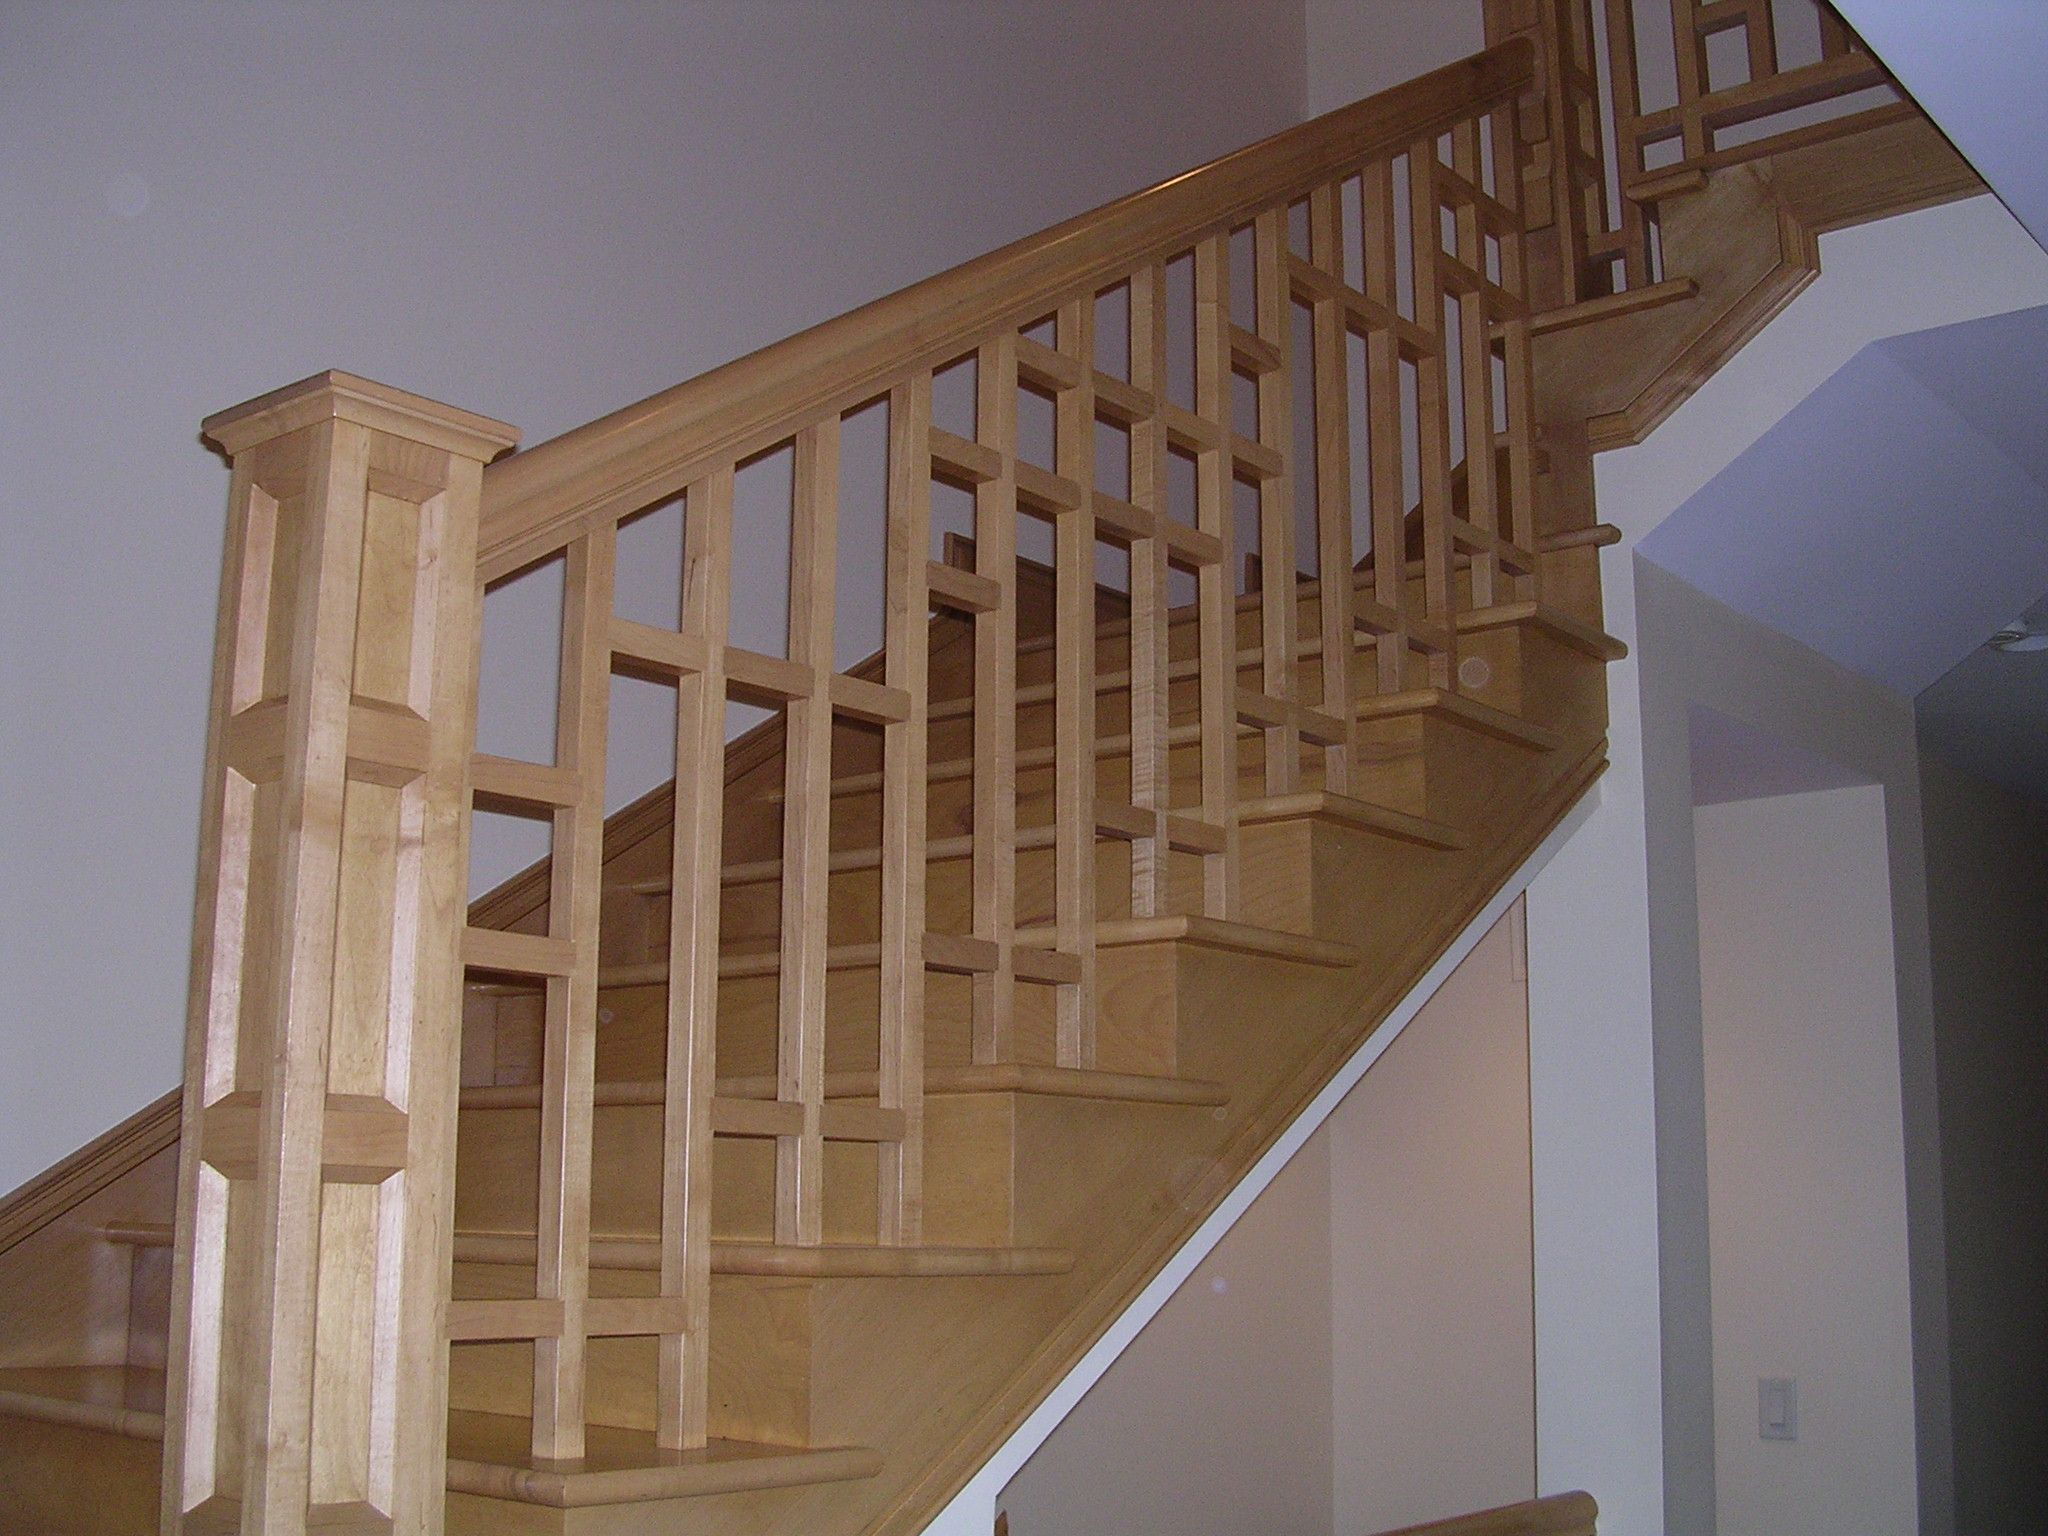 Build Newel Post Craftsman Newel Post And Nice Baluster Design Stairs Pinterest